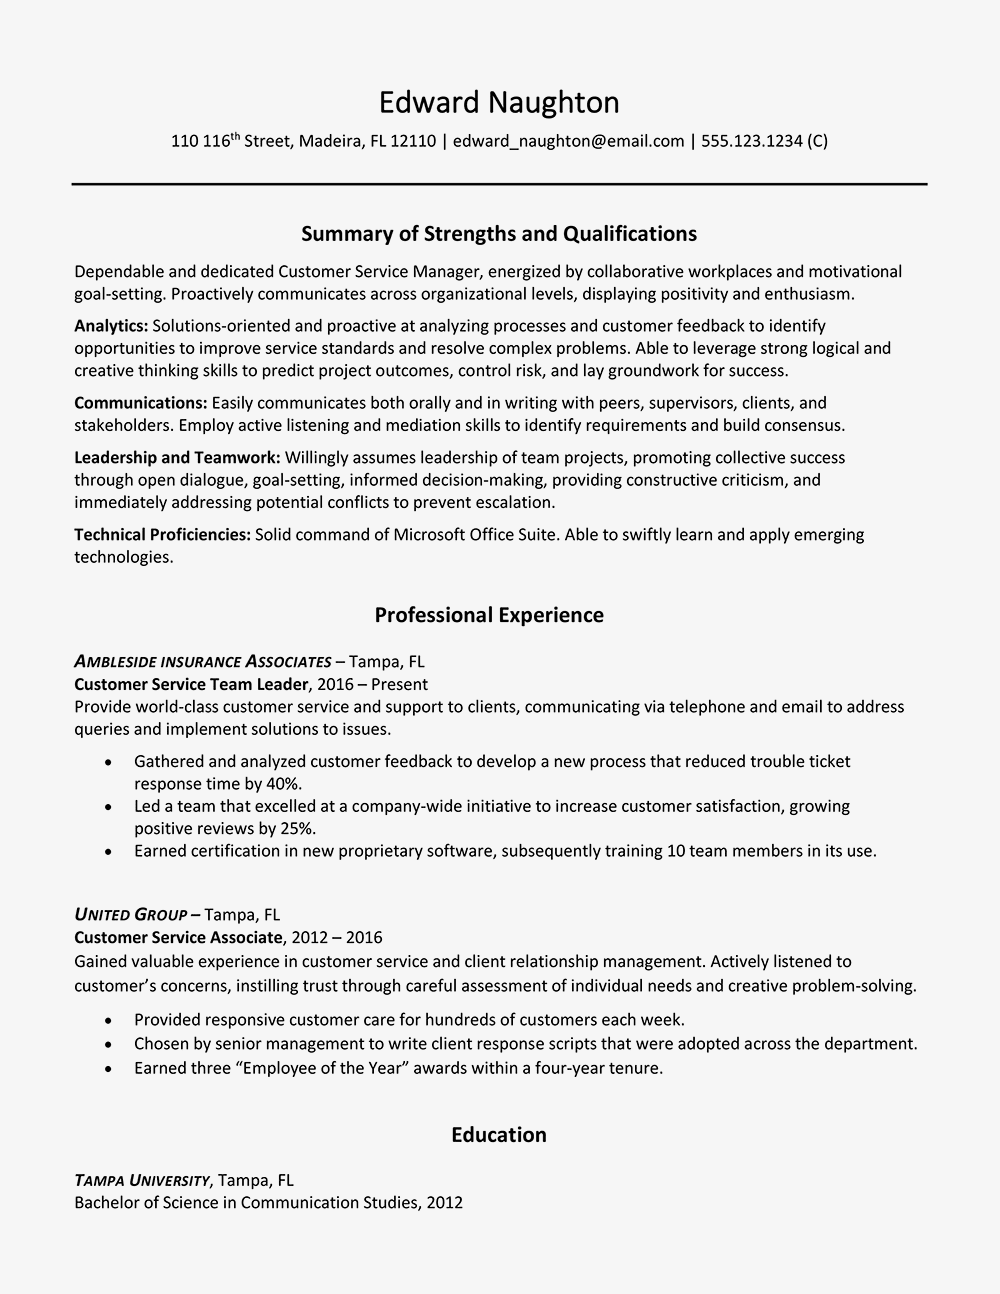 strengths to put on a resume